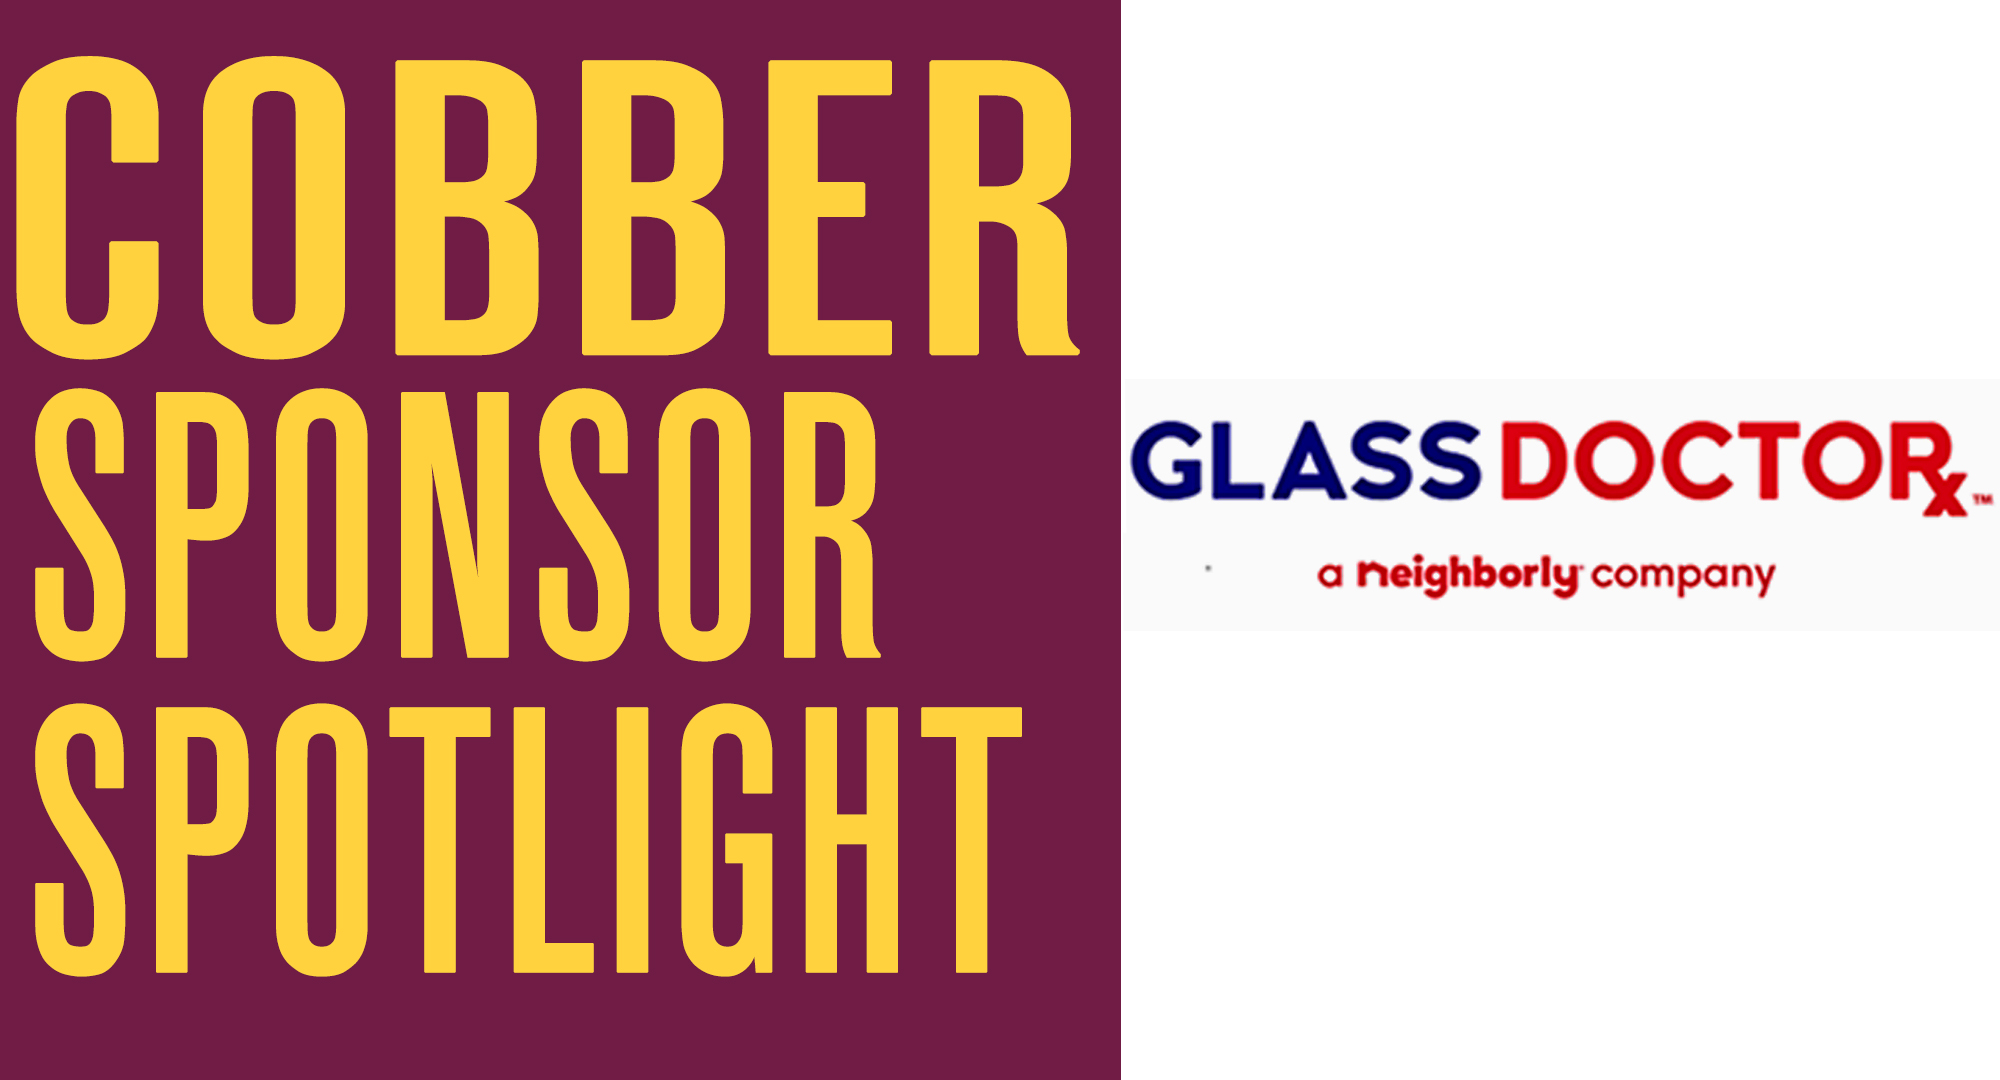 Cobber Sponsor Spotlight - Glass Doctor